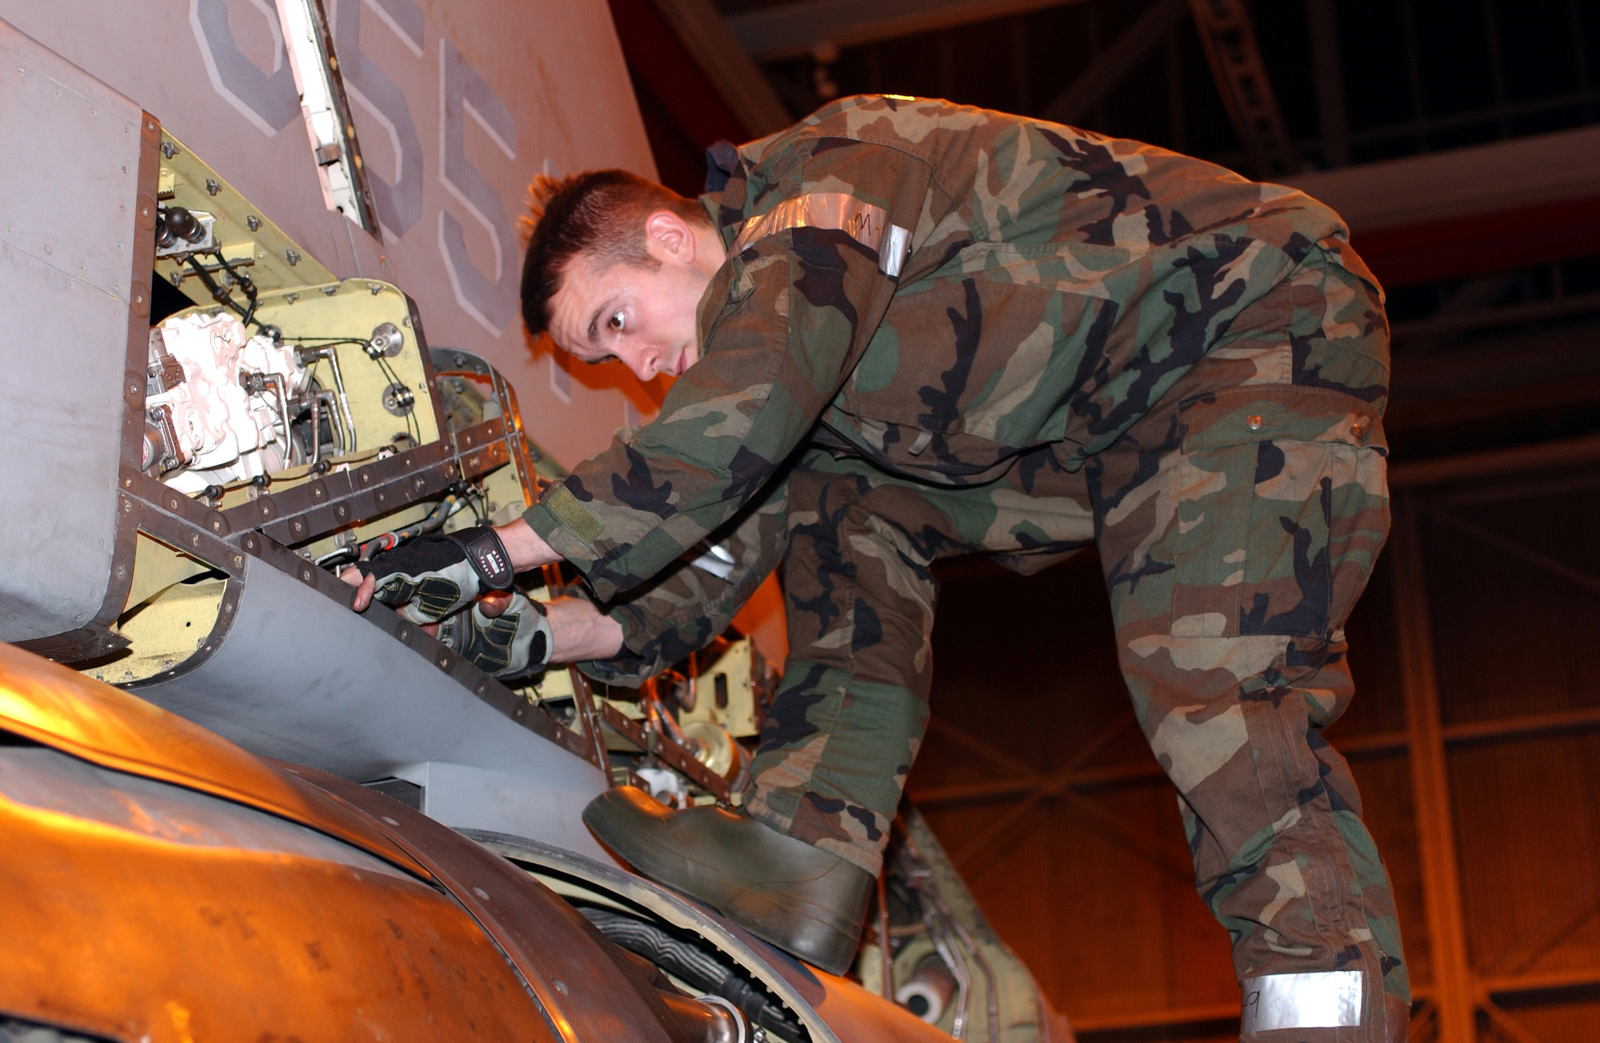 US Air Force (USAF) STAFF Sergeant (SSGT) Joseph Carrender, Phase Inspection Team Member, 31st Aircraft Maintenance Squadron (AMXS), performs routine maintenance on an F-16 Fighting Falcon, while in Mission-Oriented Protective Posture response level 2 (MOPP-2), during the LOCAL SALTY NATION exercise. The LSN prepares members of the 31st Fighter Wing (FW) for an upcoming Tactical Evaluation